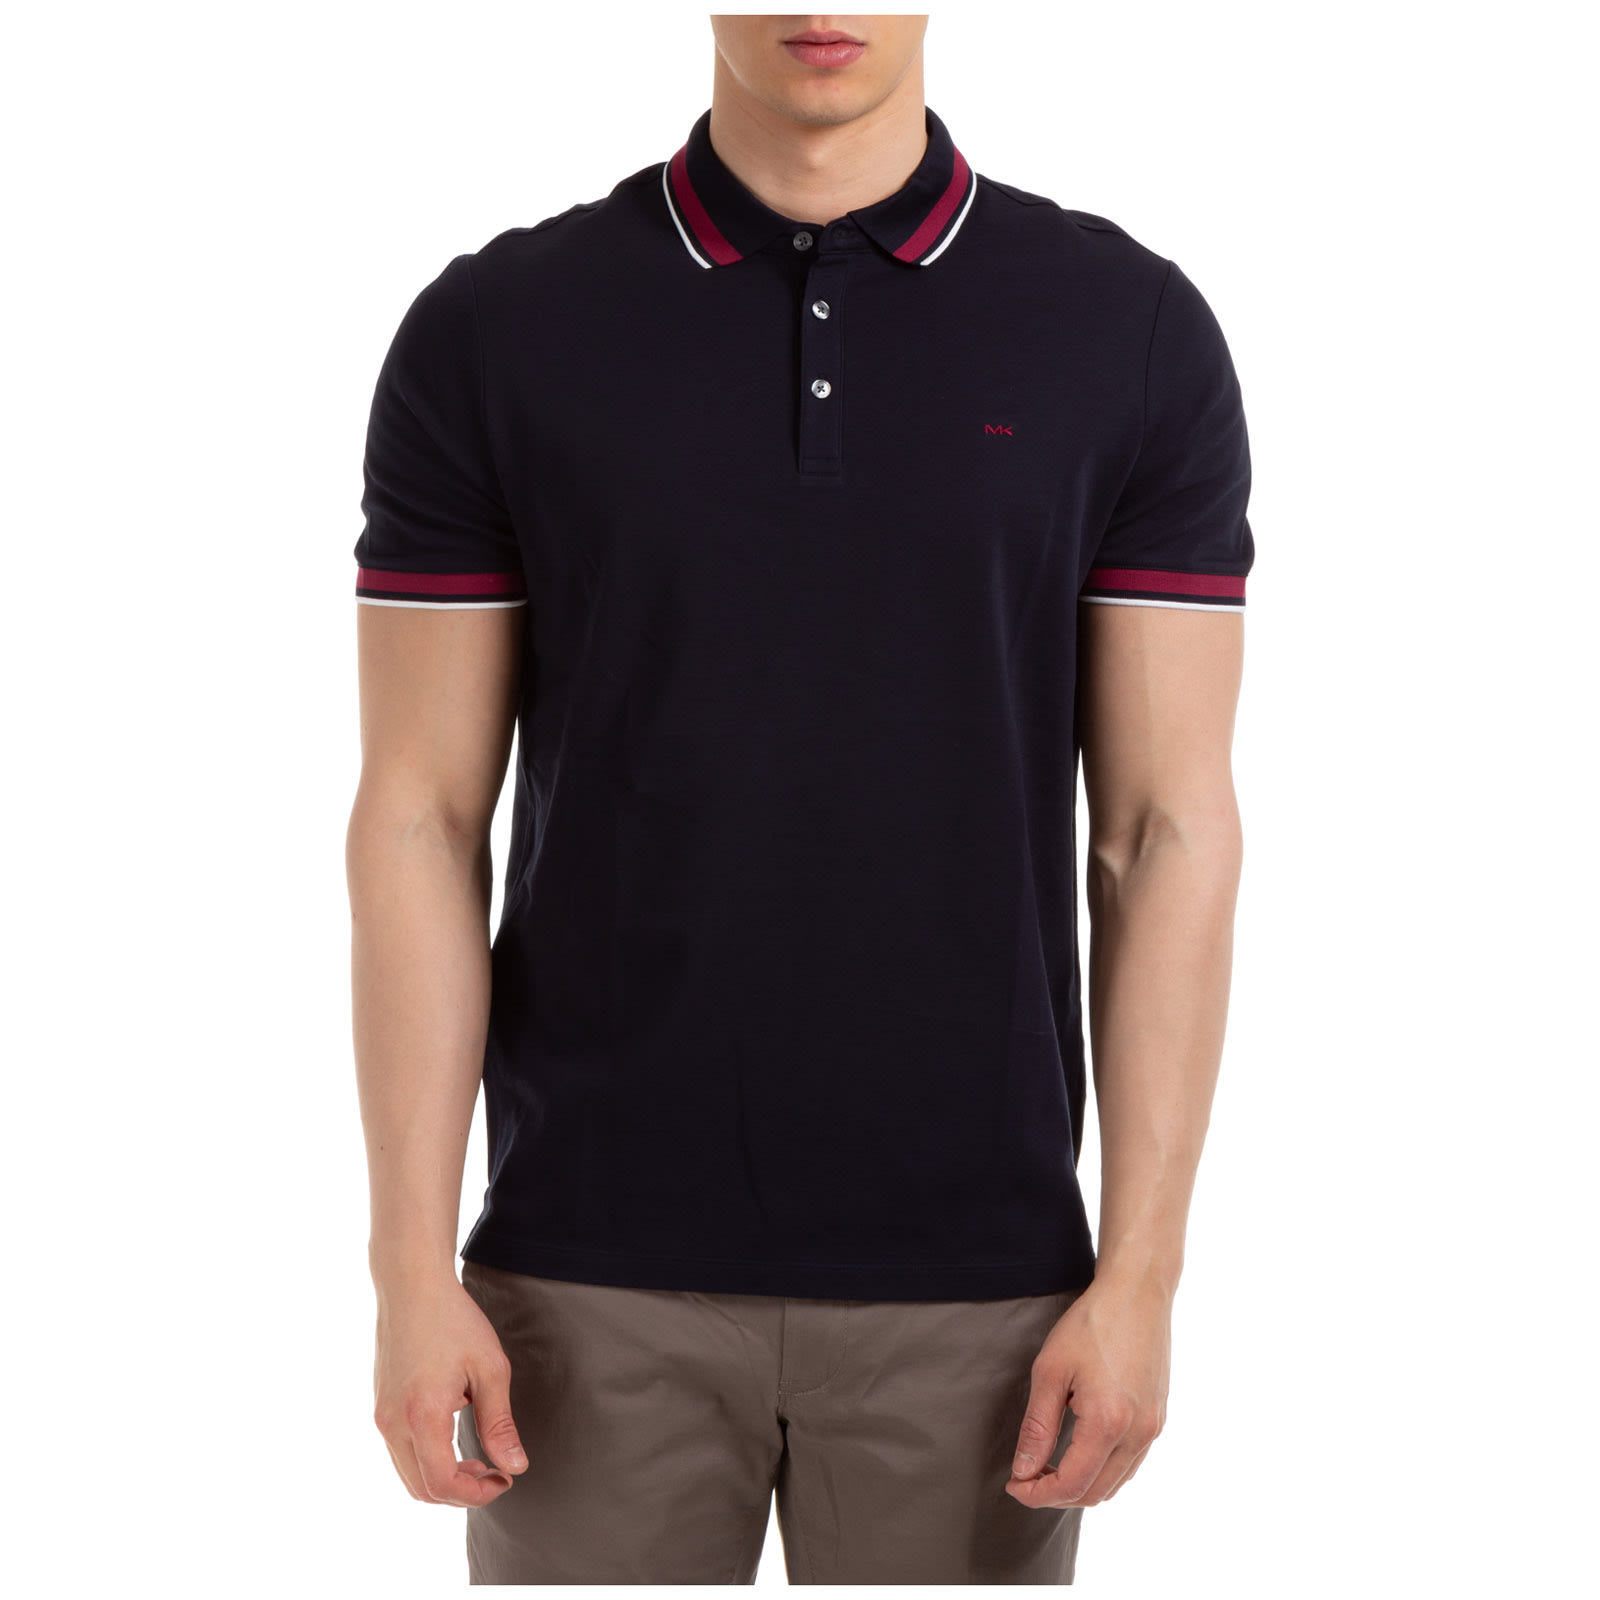 Michael Kors Resort Polo Shirts